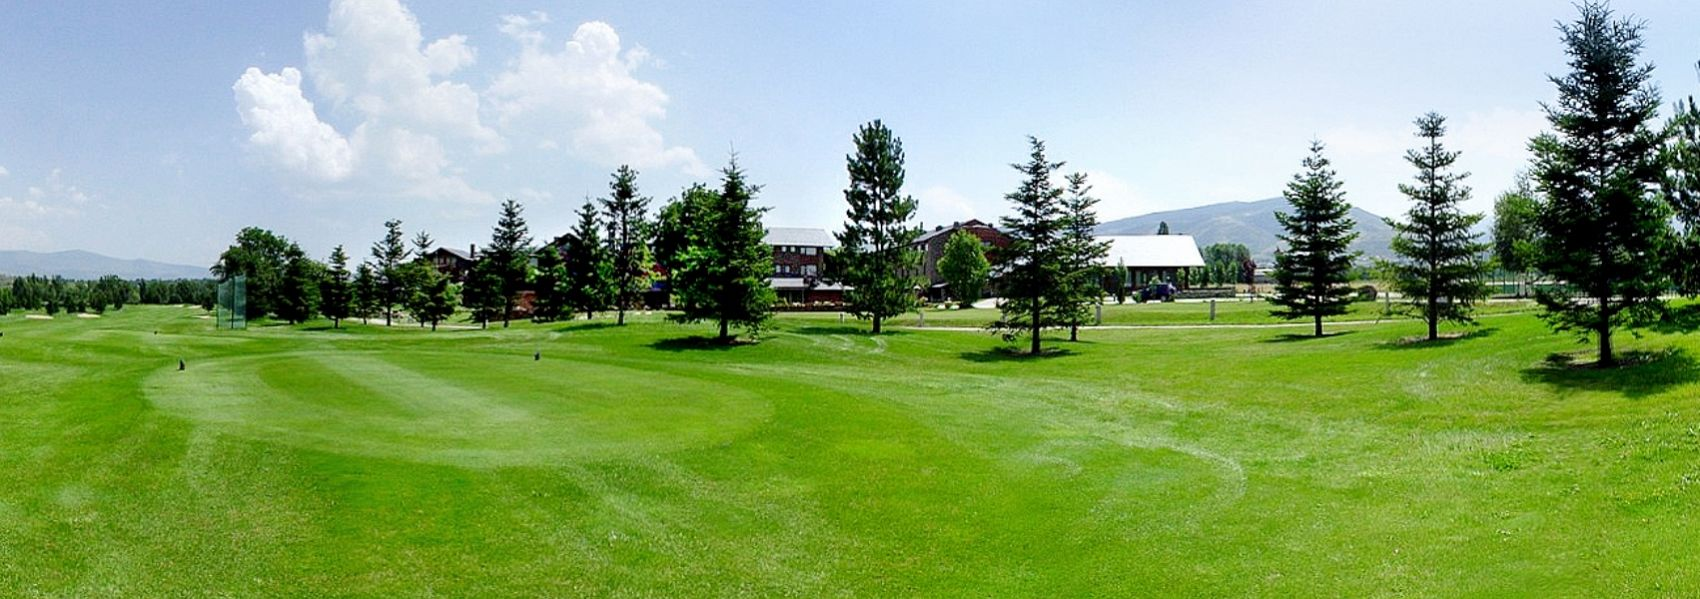 Hotel Fontanals Golf **** - WEB OFICIAL - Hotel Fontanals Golf